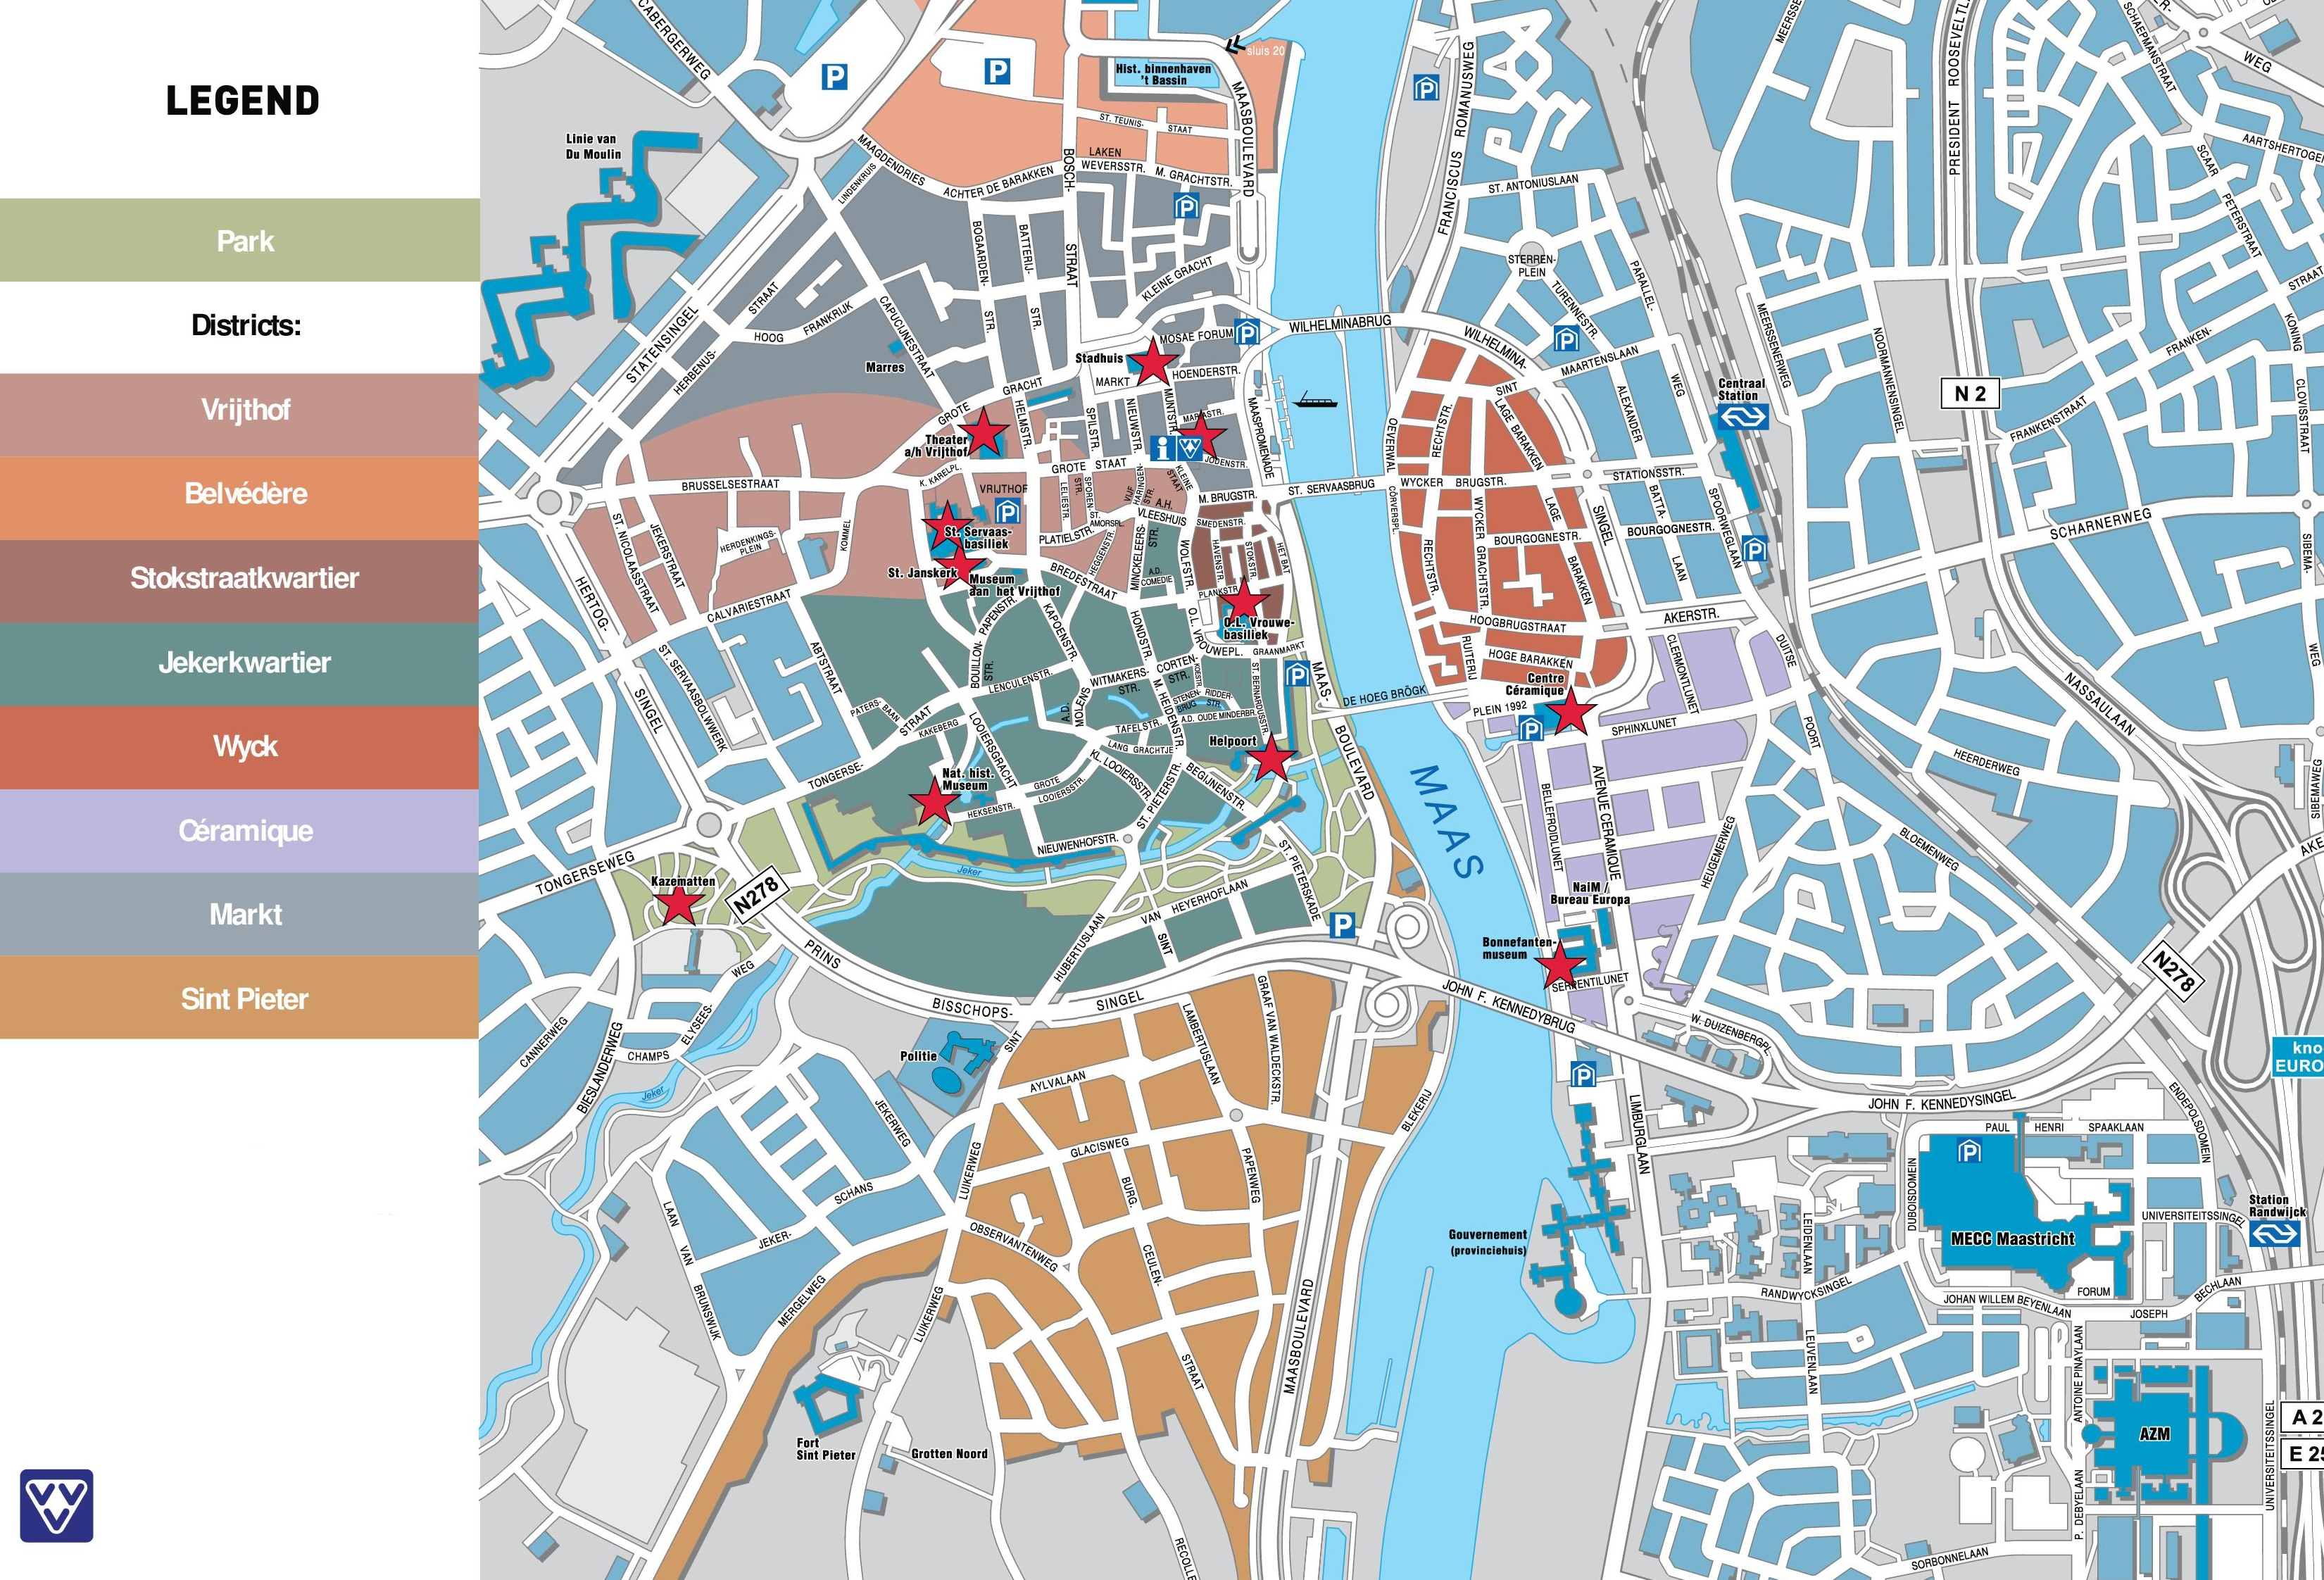 Maastricht tourist map – The Hague Tourist Map